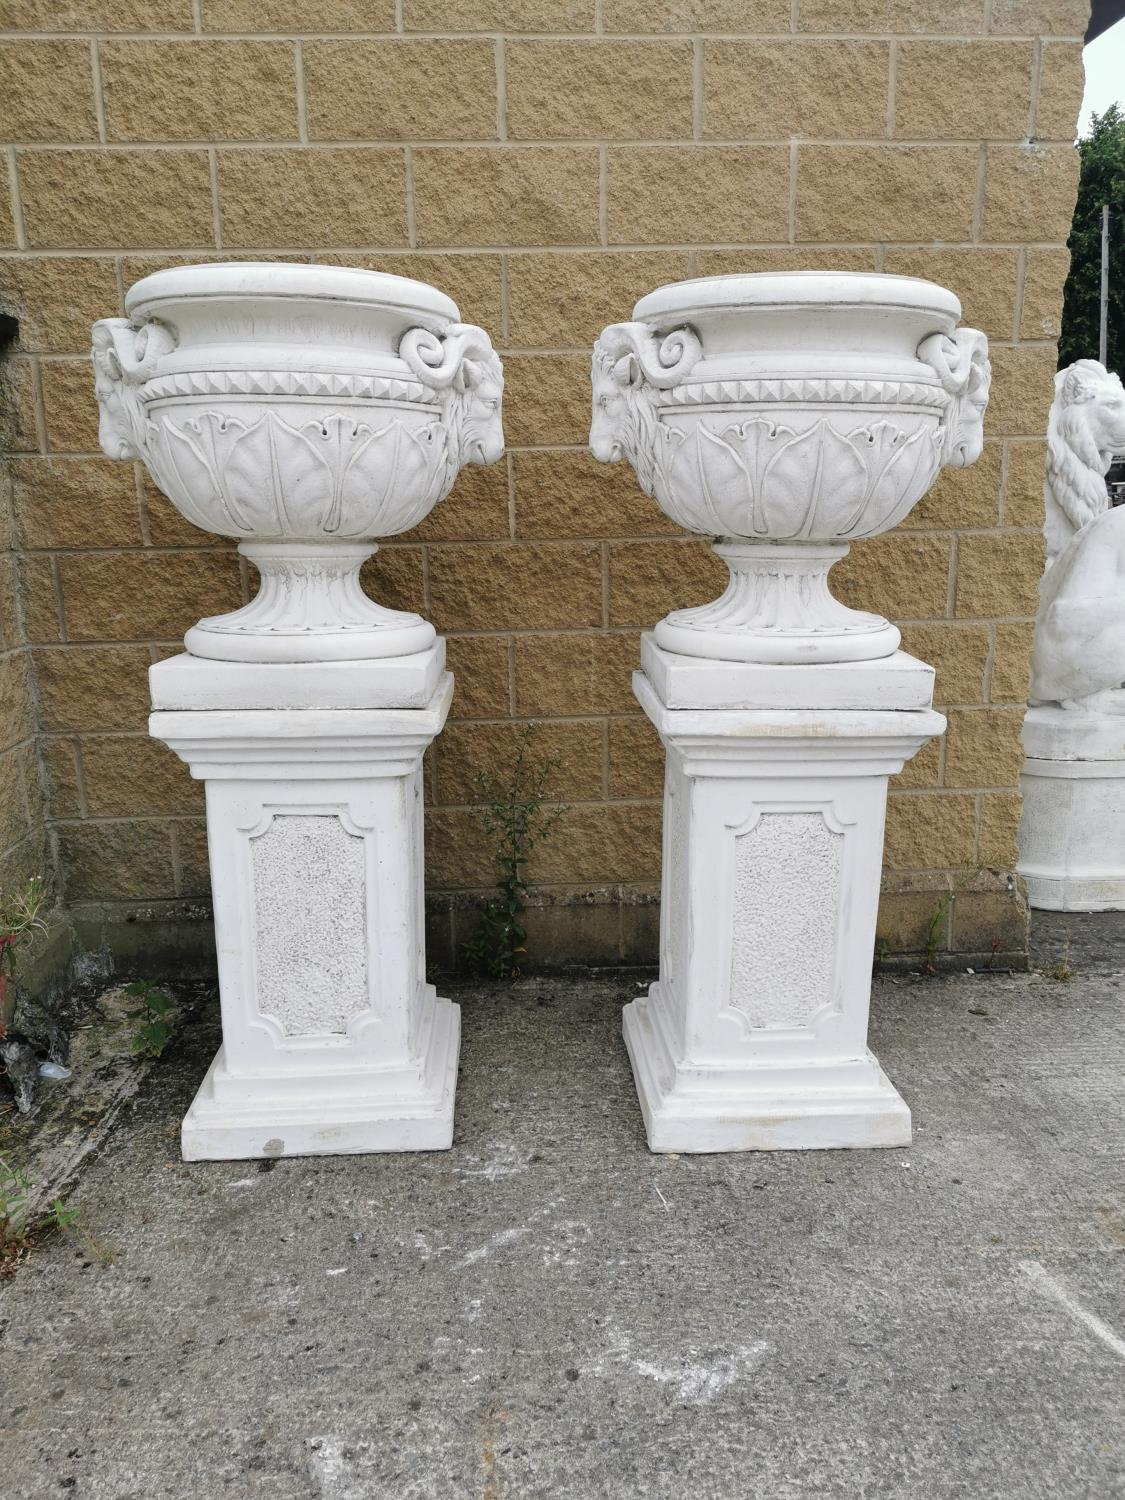 Pair of moulded stone Urns on pedestals.